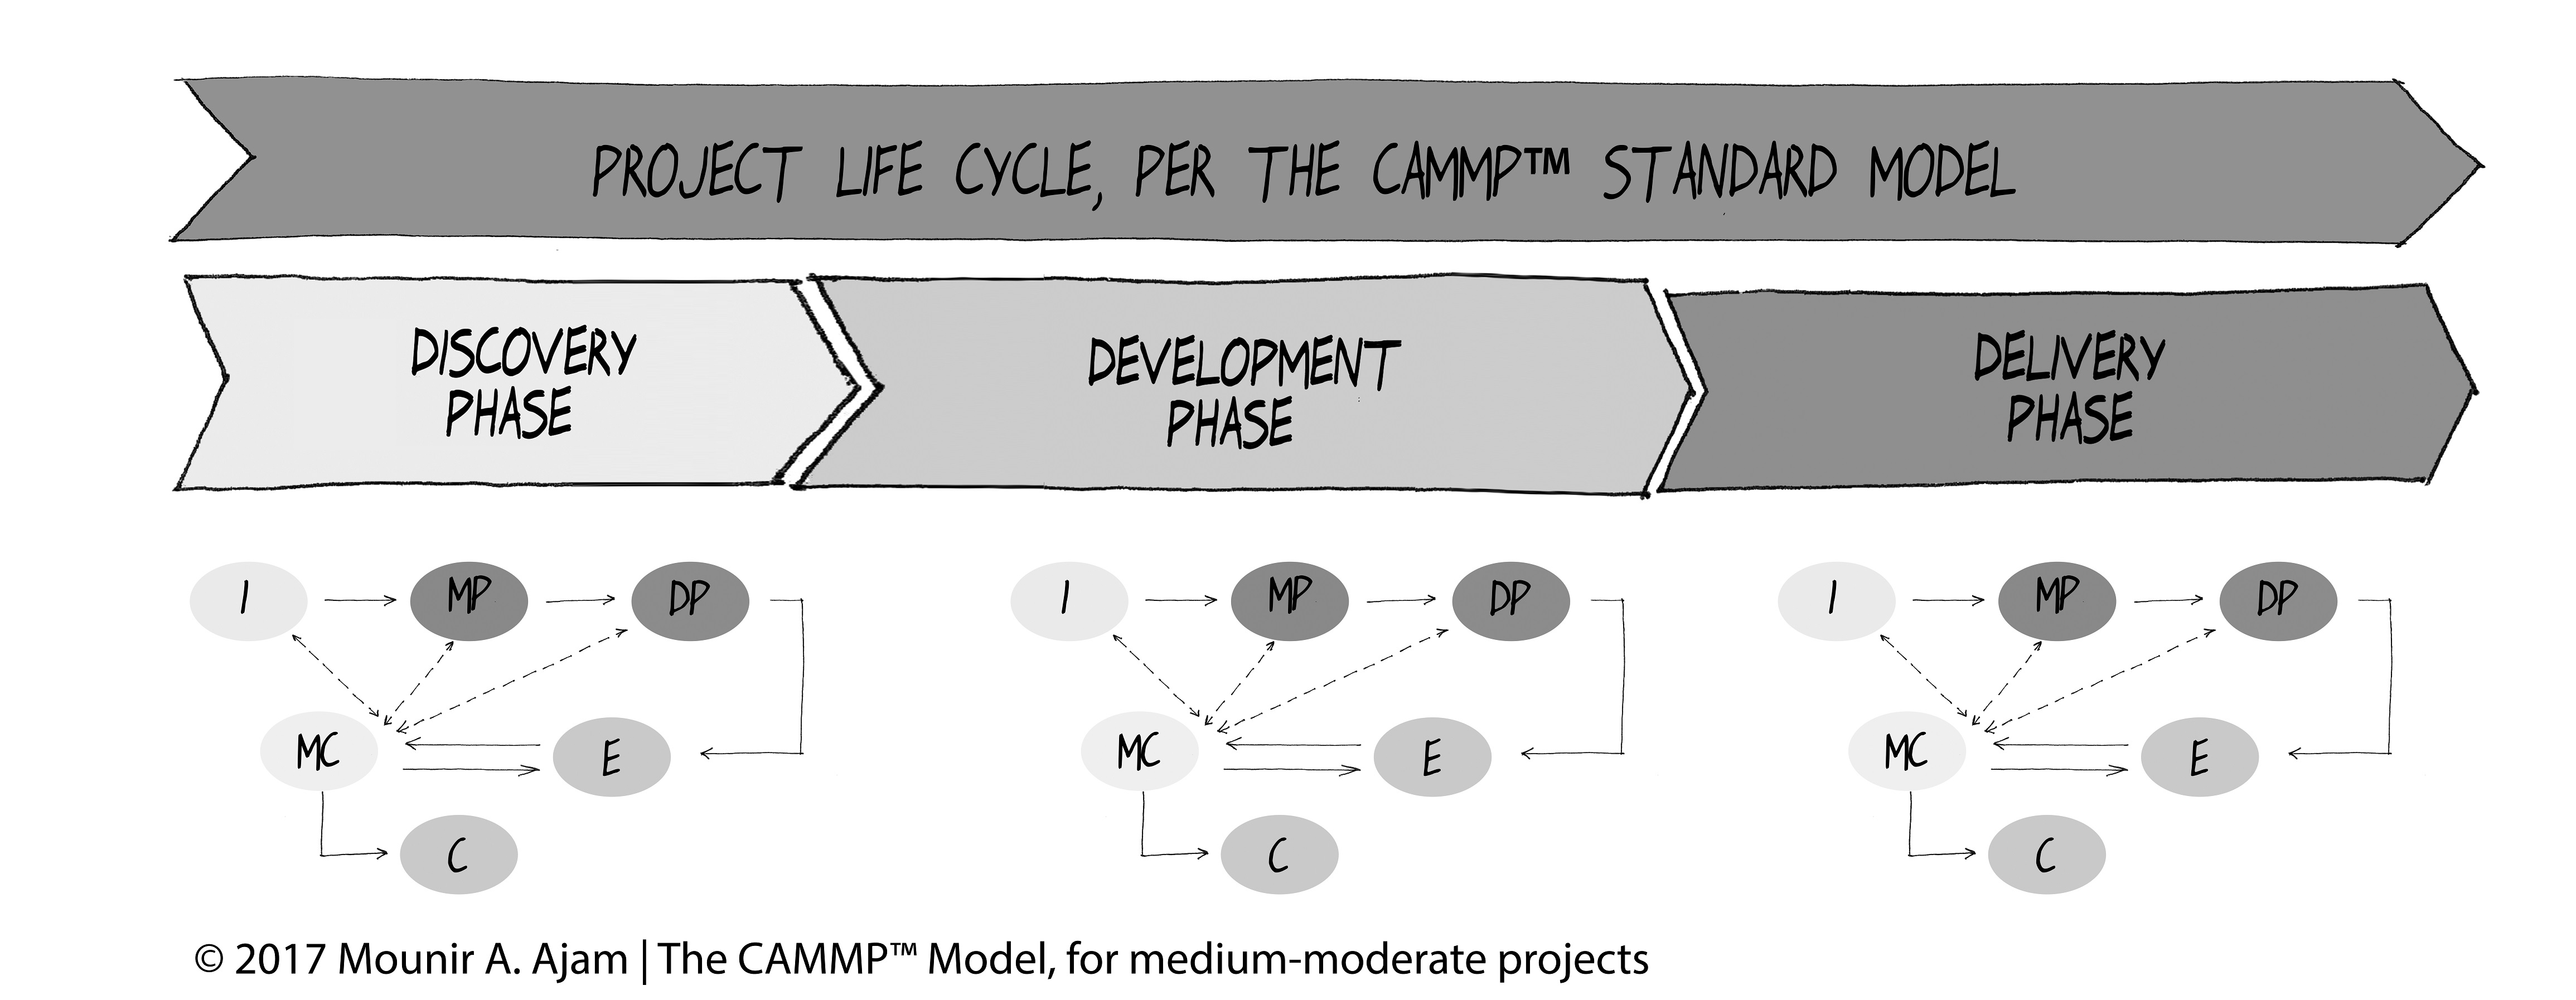 The Process Groups (Processes) Repeat in every Project Phase